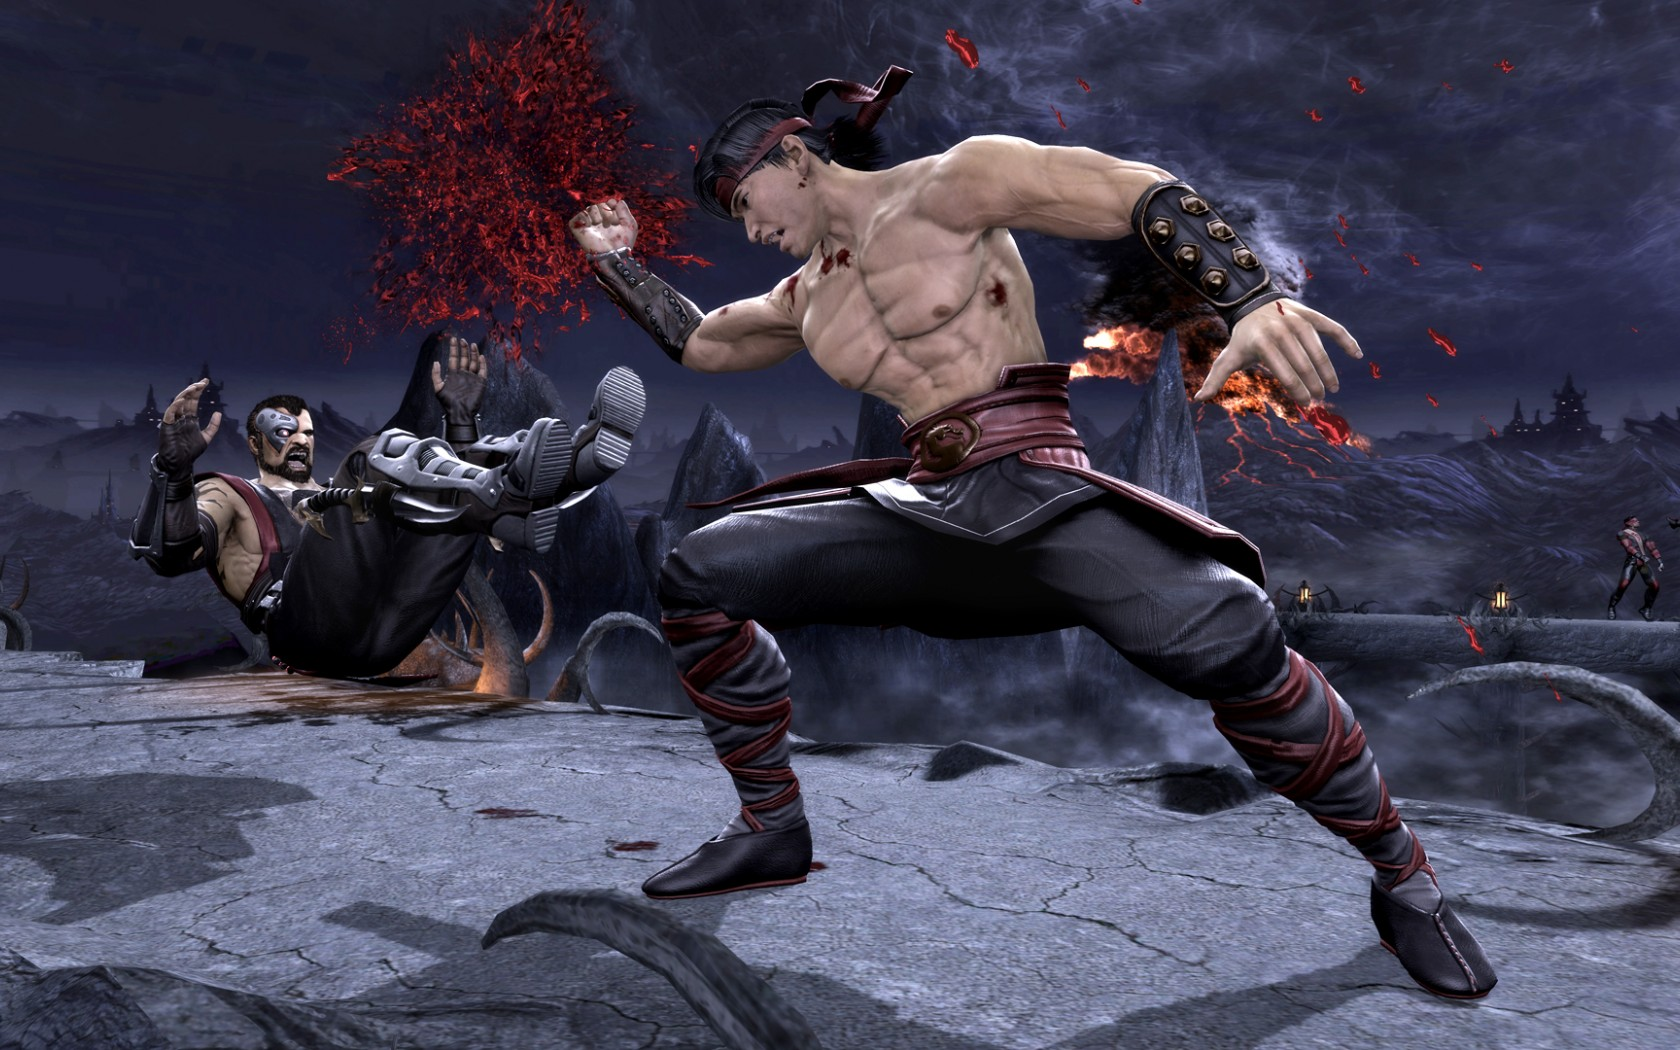 Mortal Kombat wallpaper Kano and Liu Kang